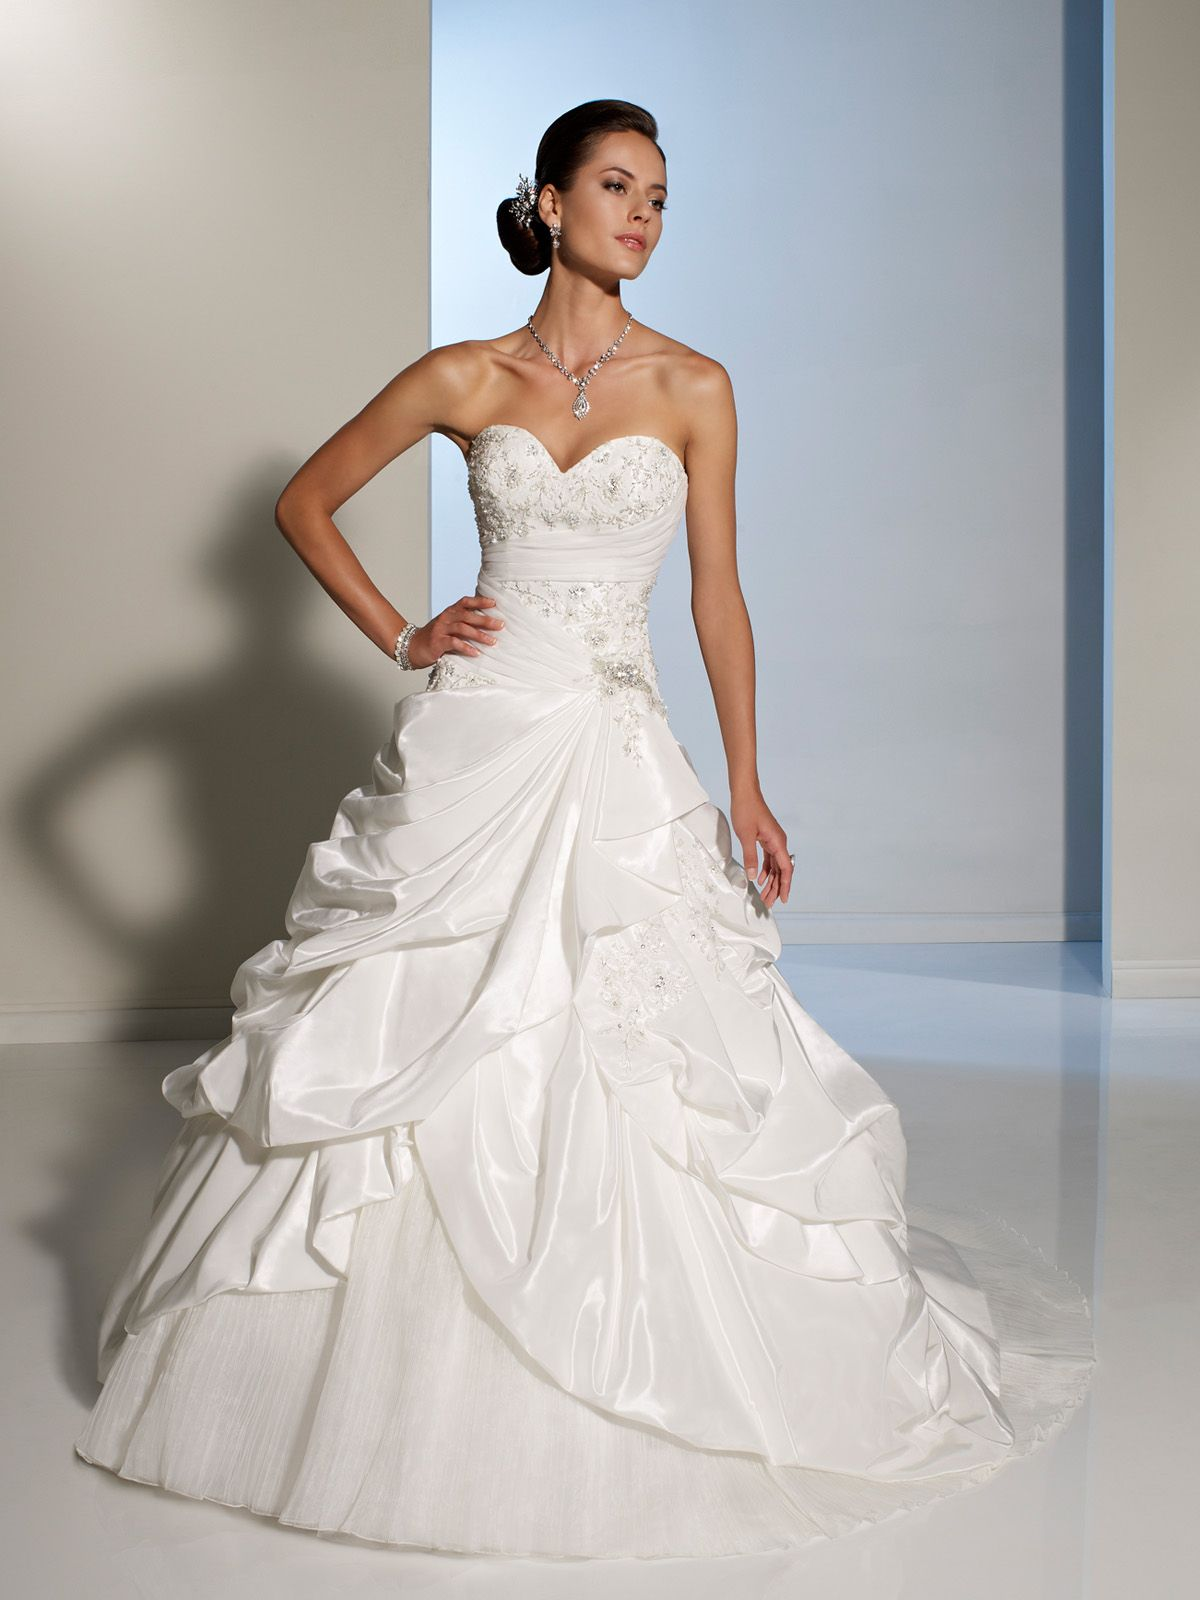 Sophia Tolli 1248 At House Of Brides Wedding Dress Wedding Dress Train Wedding Dresses Sophia Tolli Wedding Dresses